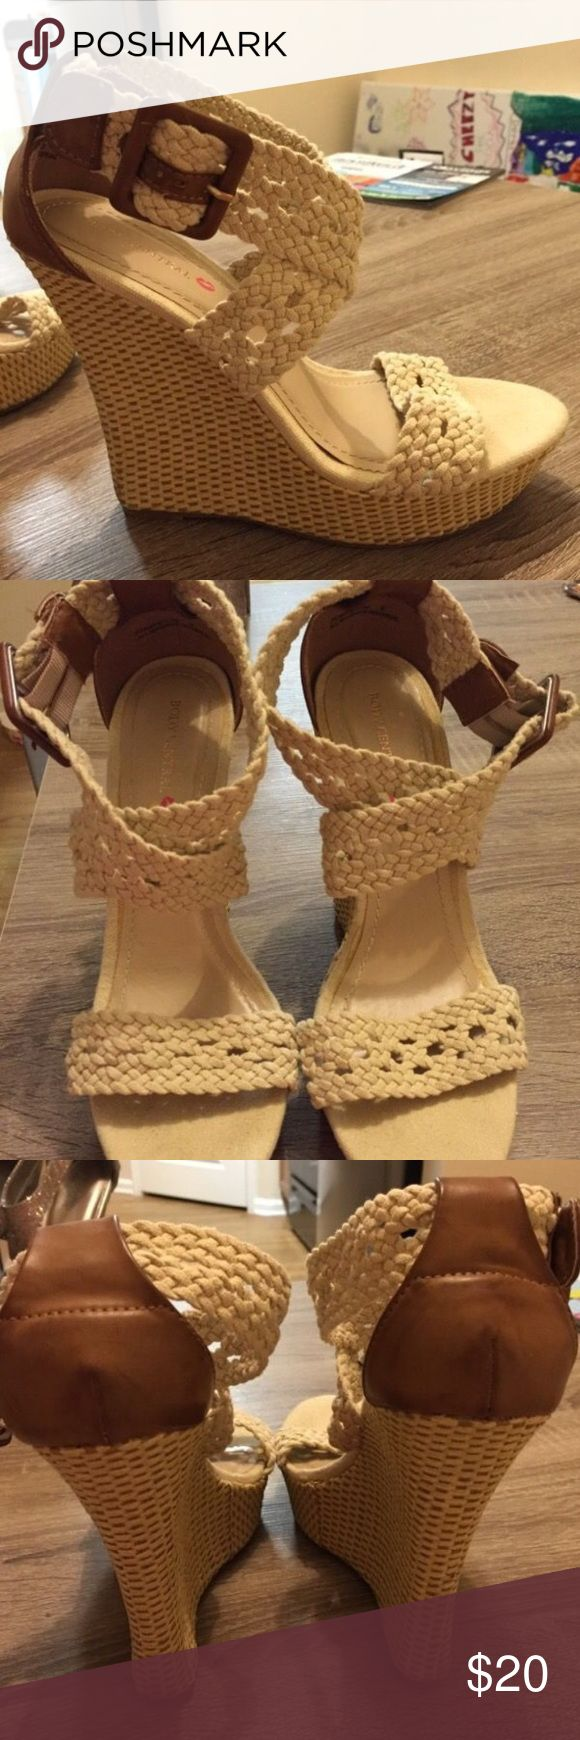 Cream/tan Body Central Wedges Brand new from Body Central. Approximately 5 inches high. Size 9. Body Central Shoes Wedges